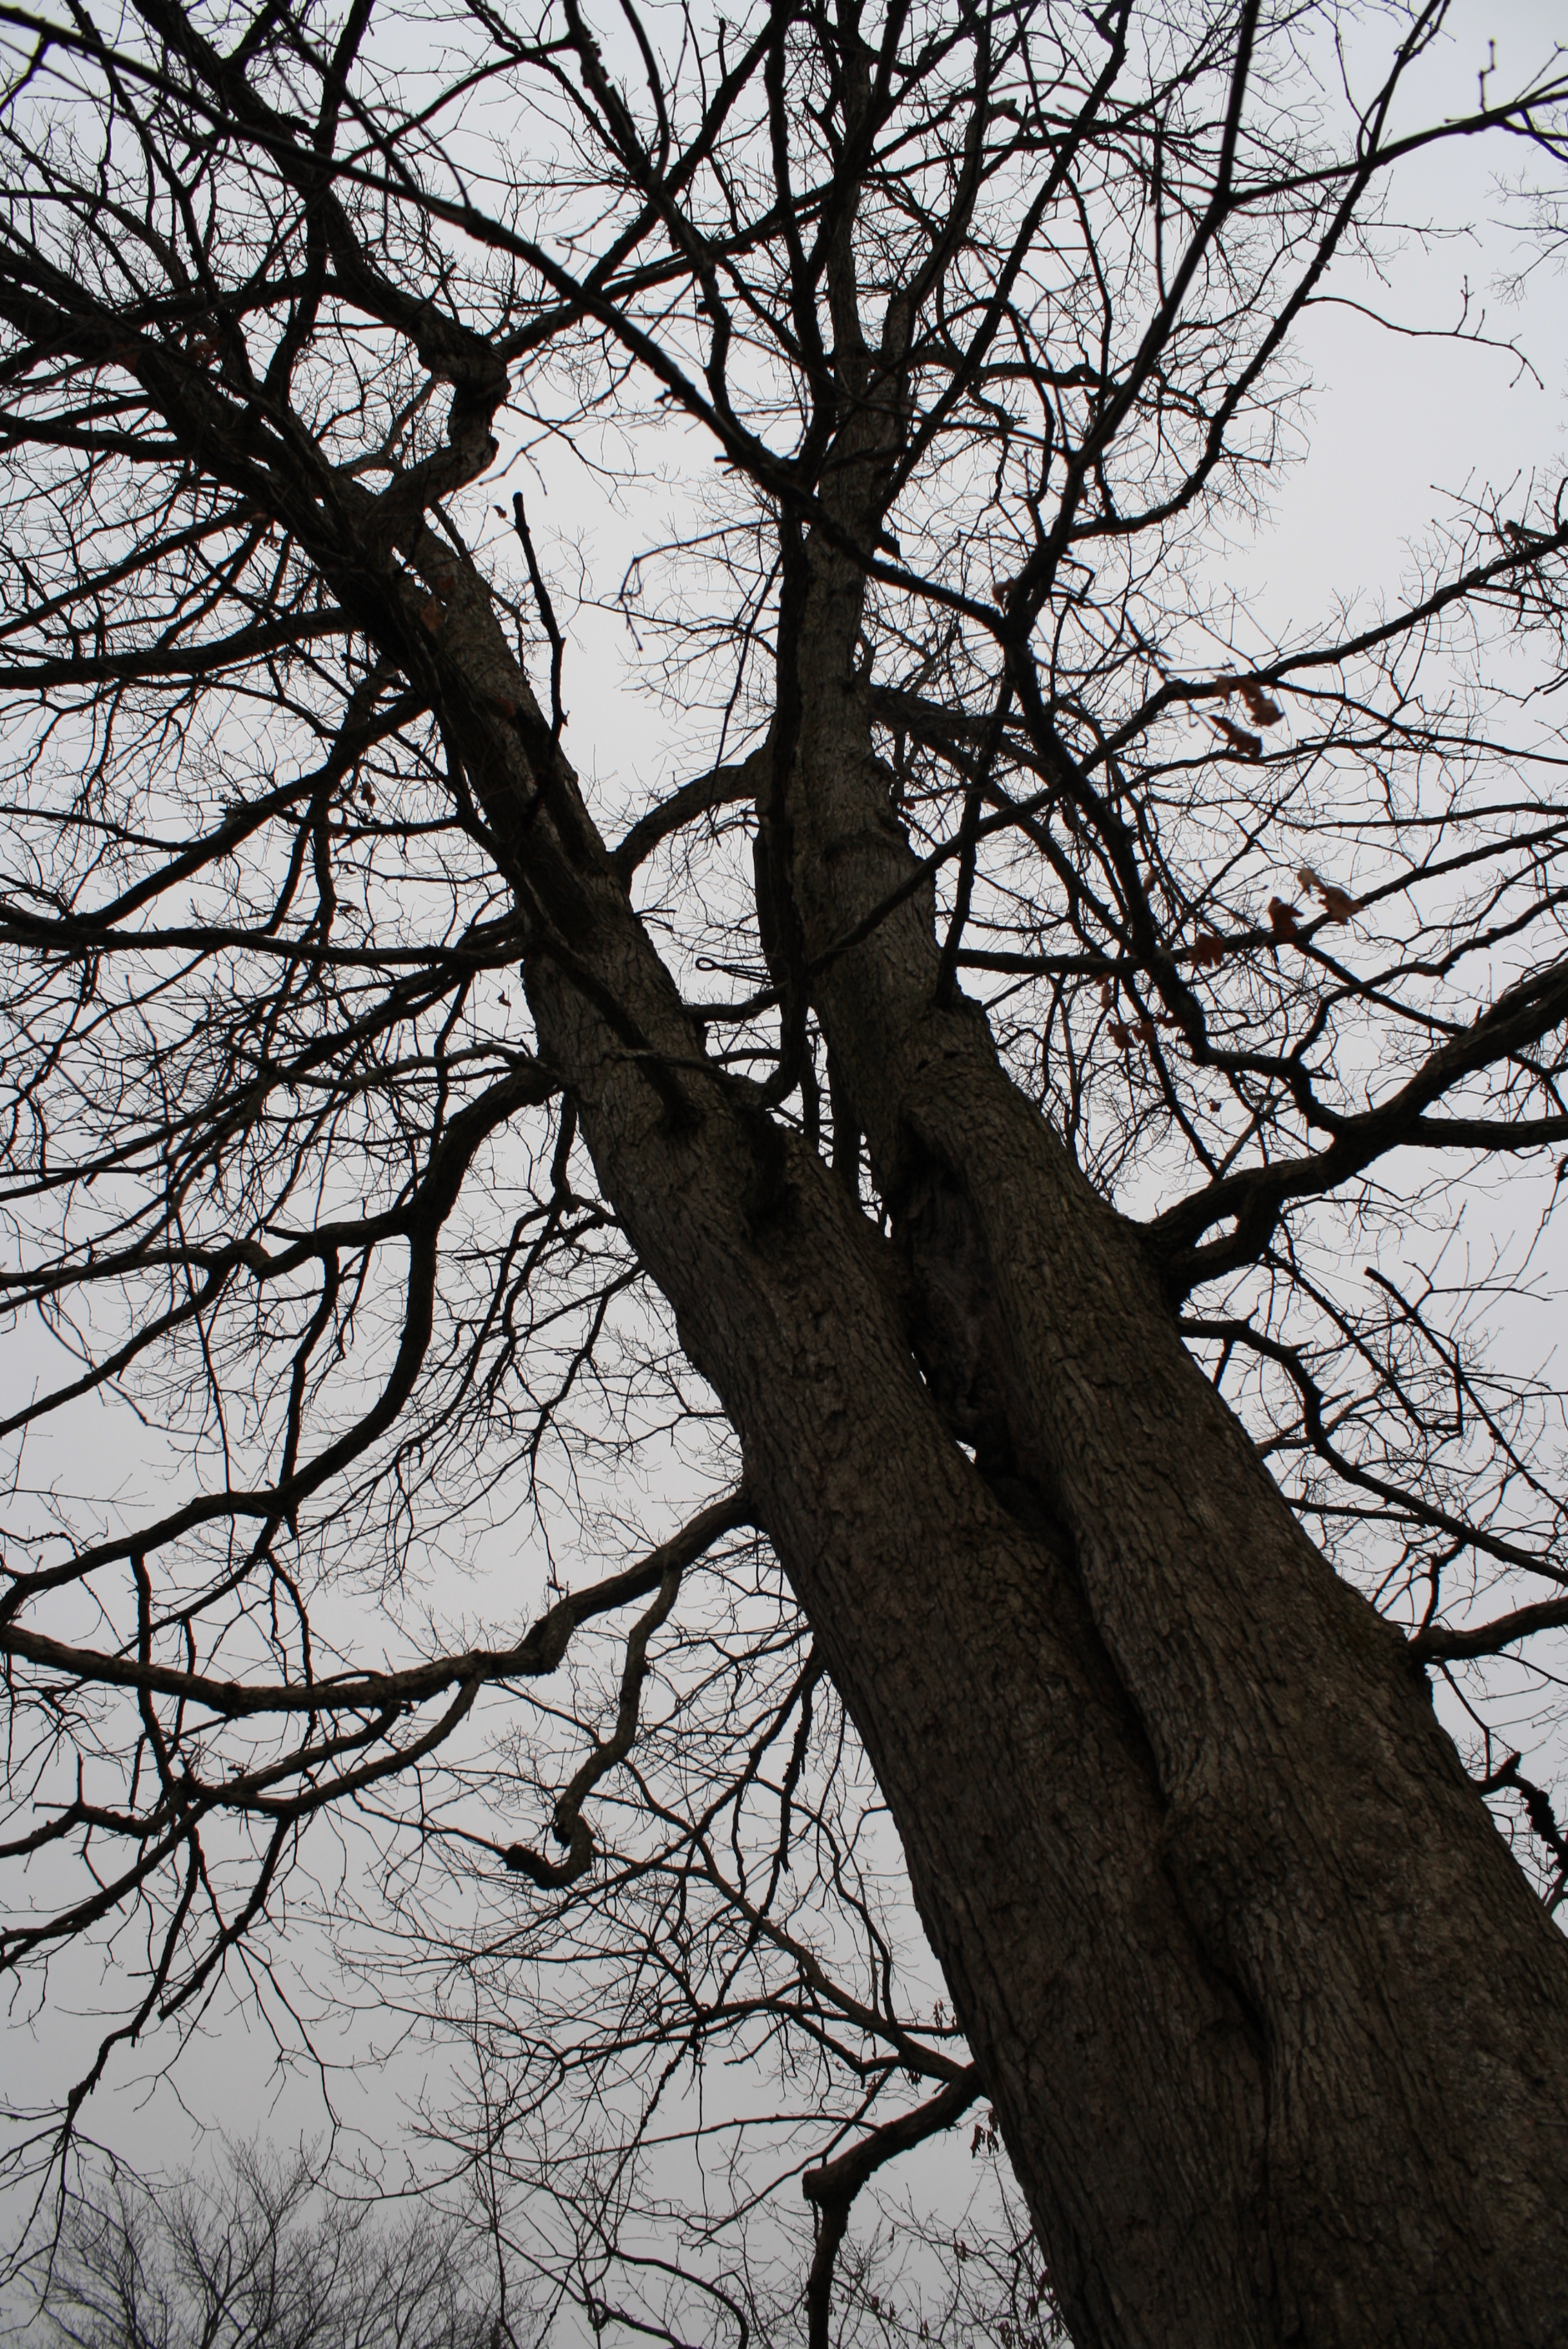 An-old-dead-creepy-tree-in-my-backyard-wallpaper-wp5403234